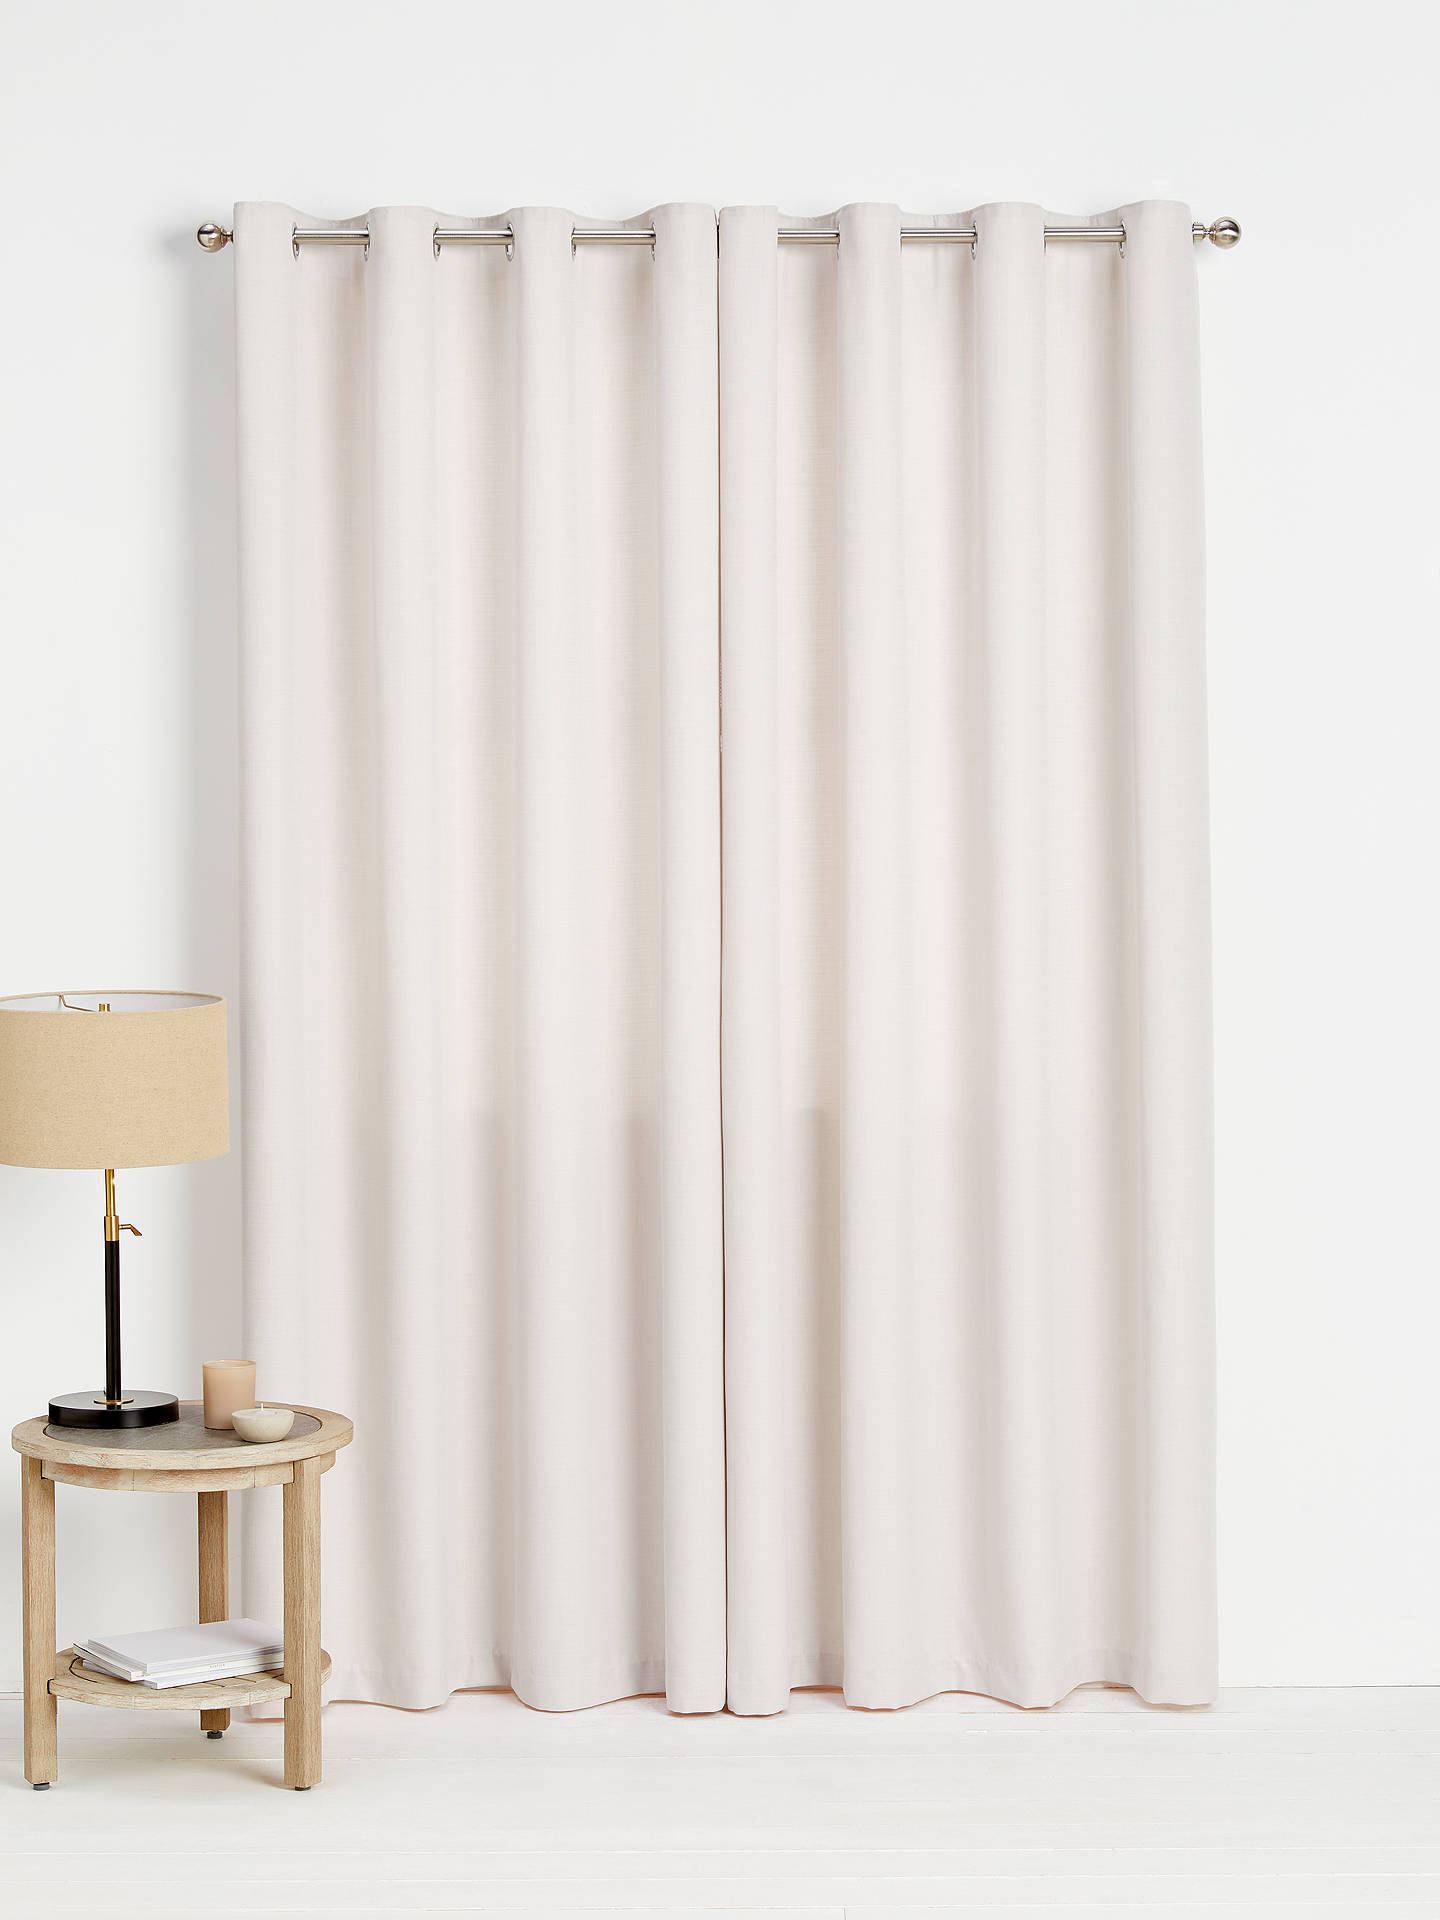 Buy John Lewis & Partners Barathea Pair Lined Eyelet Curtains, Wisteria, W167 x Drop 228cm Online at johnlewis.com